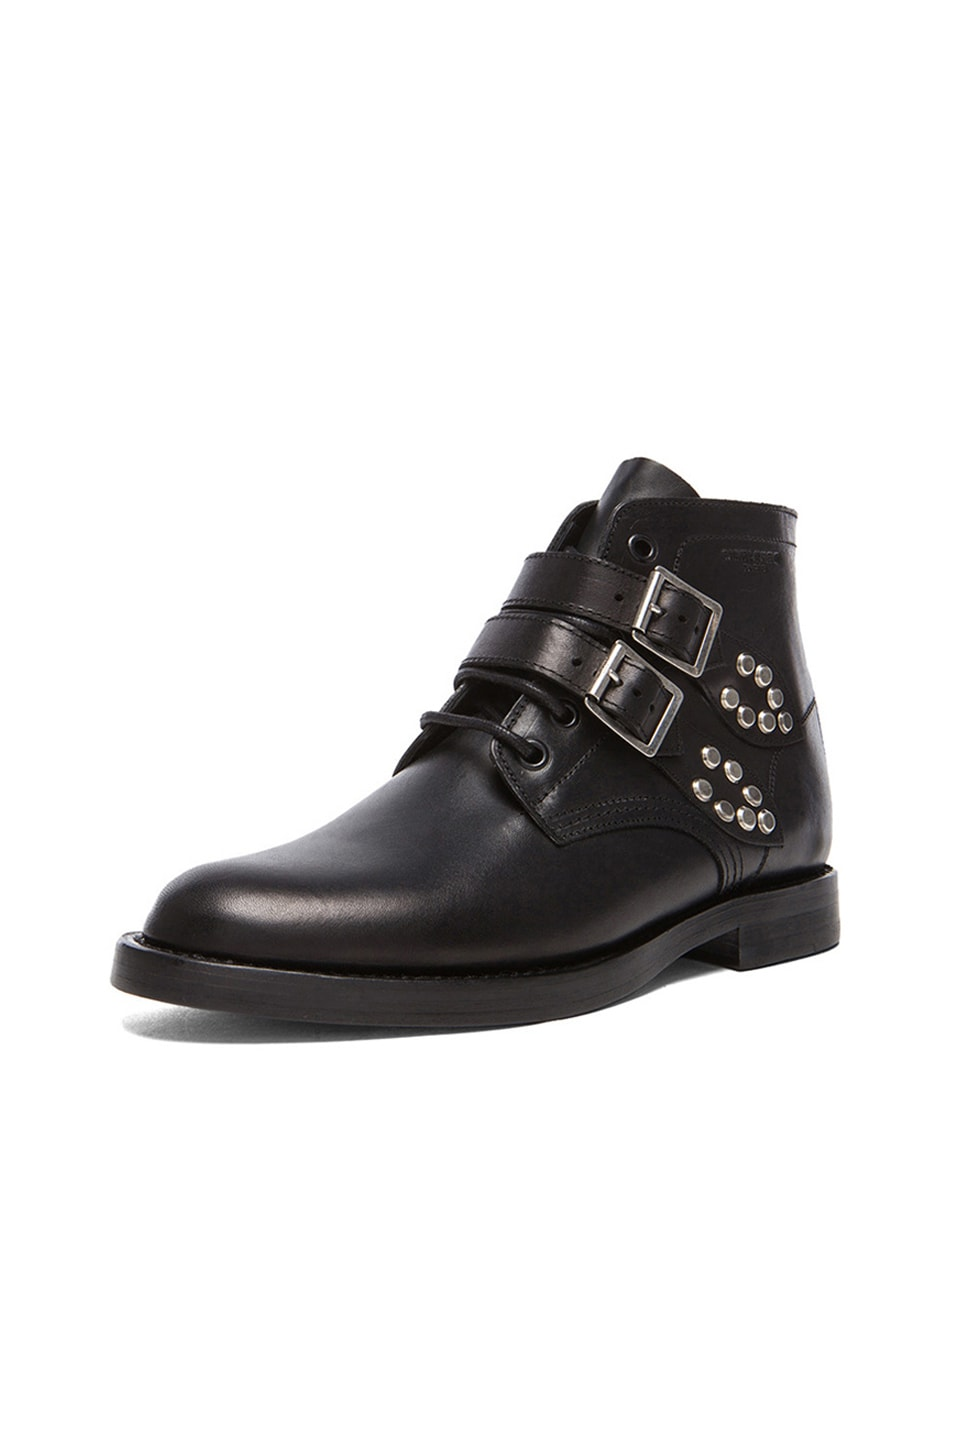 Image 2 of Saint Laurent Leather Buckled Ankle Boots in Black